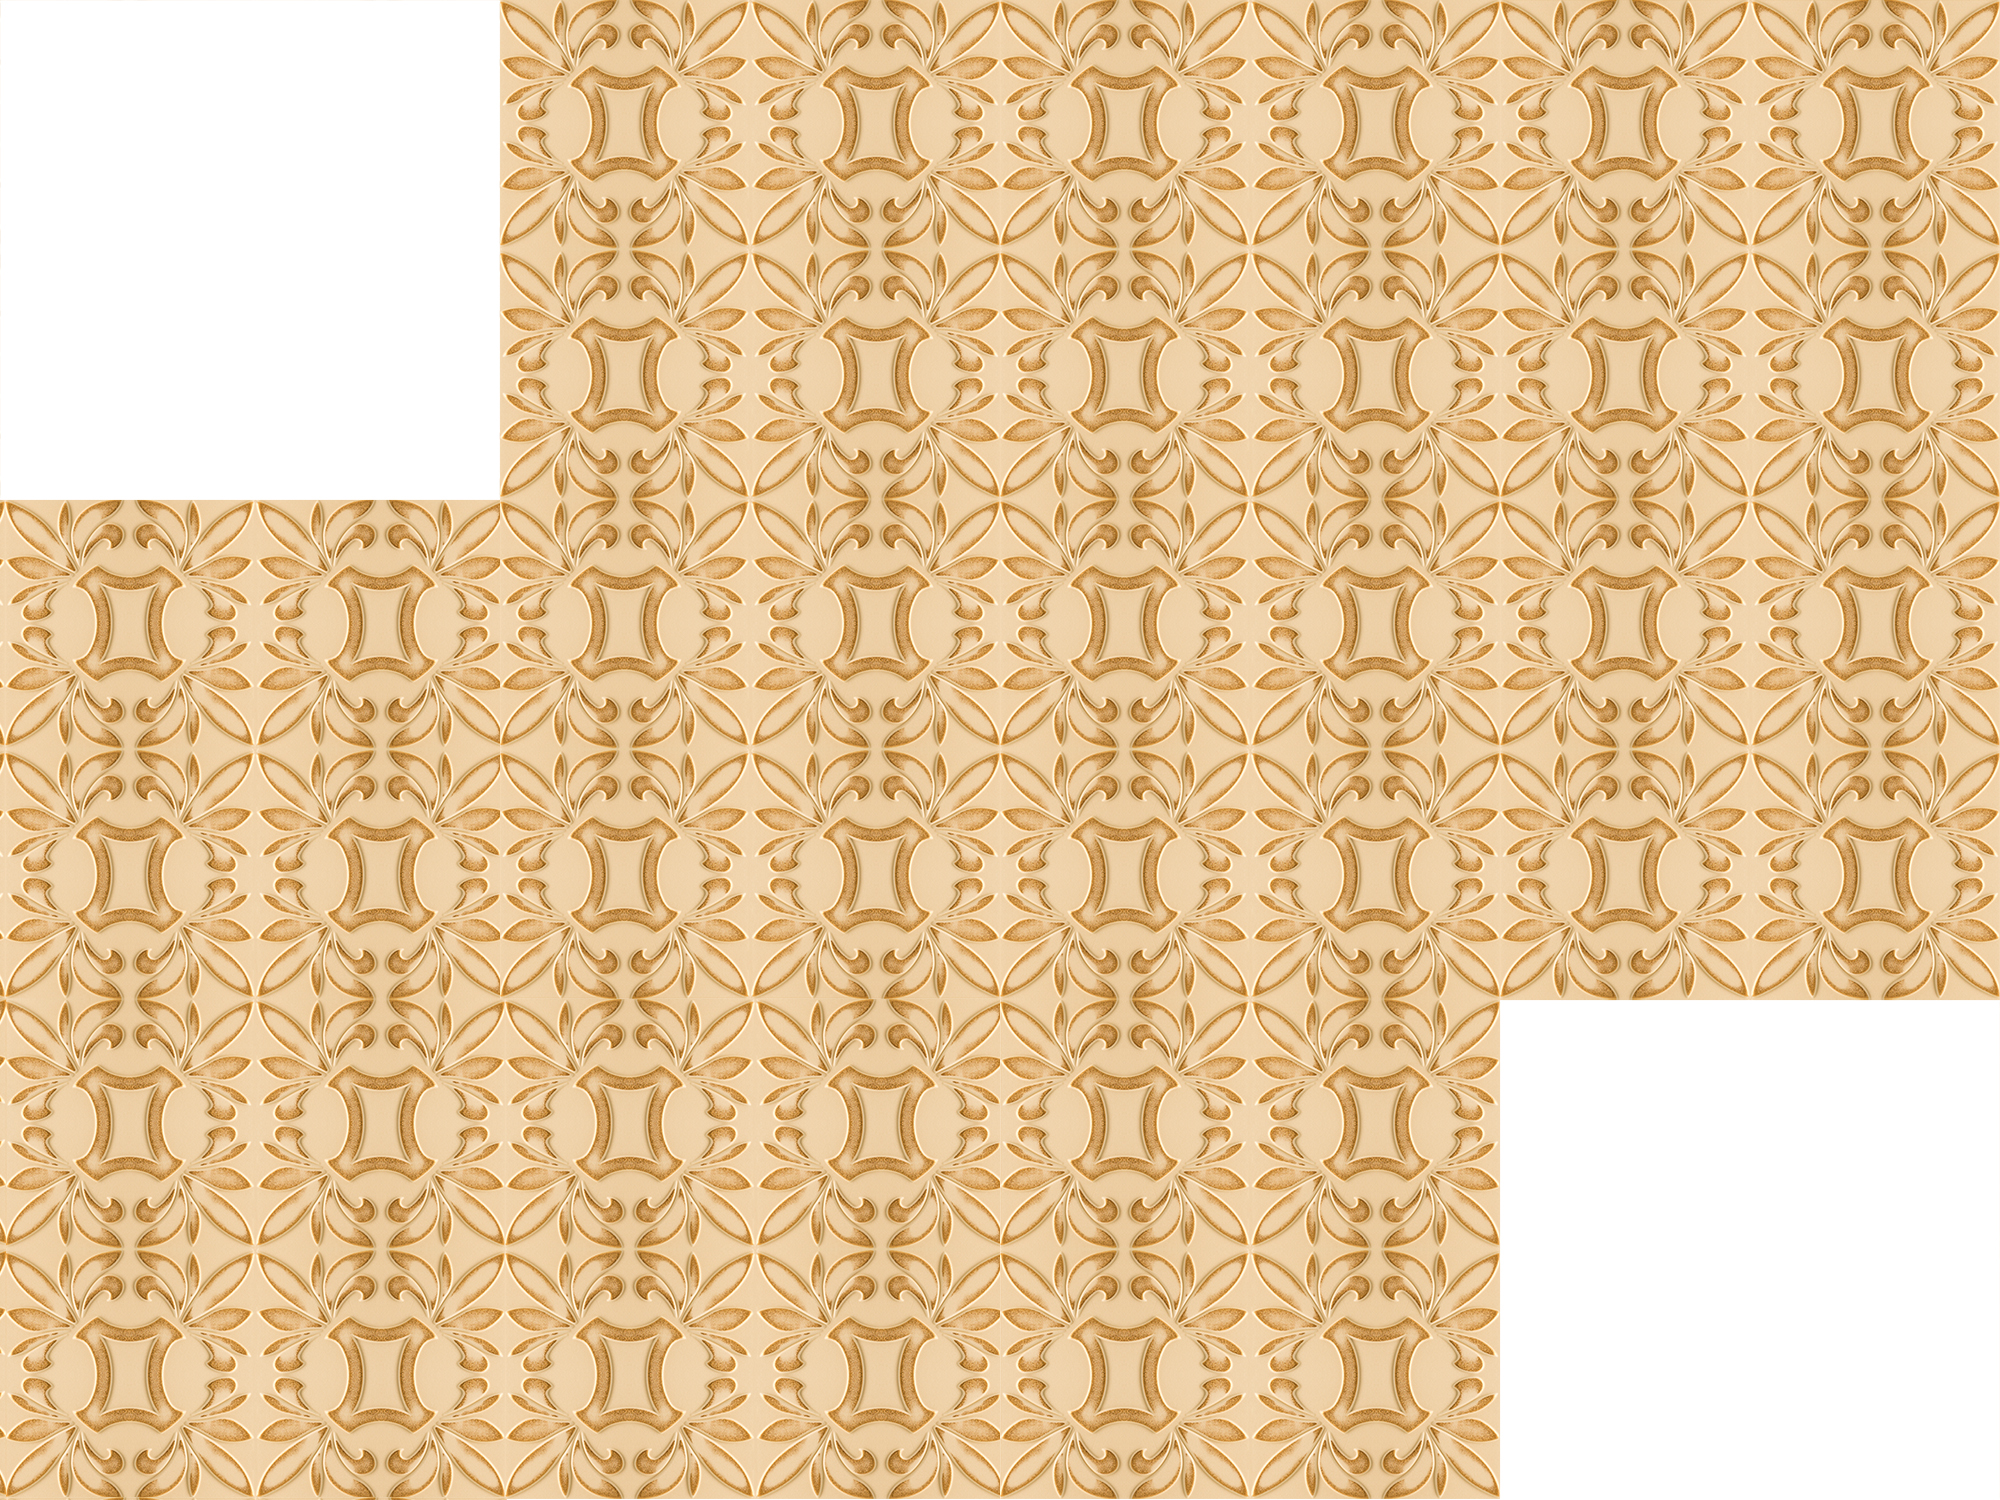 1 saver set ceiling tiles retro ceiling design beige gold 50x50cm ceiling plates nr 112 b z beige gold retro look plate thickness 4 10 mm depending on the pattern dailygadgetfo Choice Image